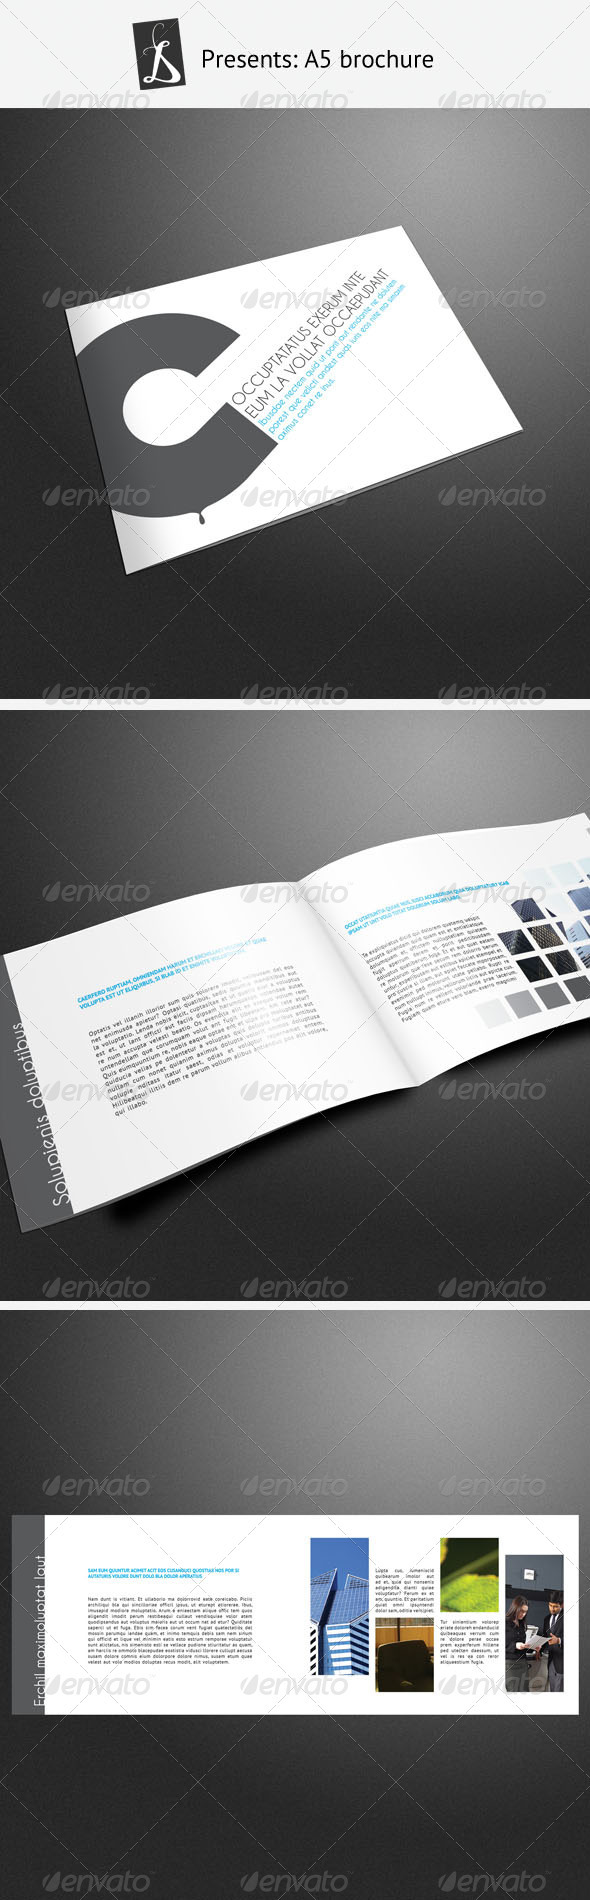 A5 Brochure 4 - Corporate Brochures